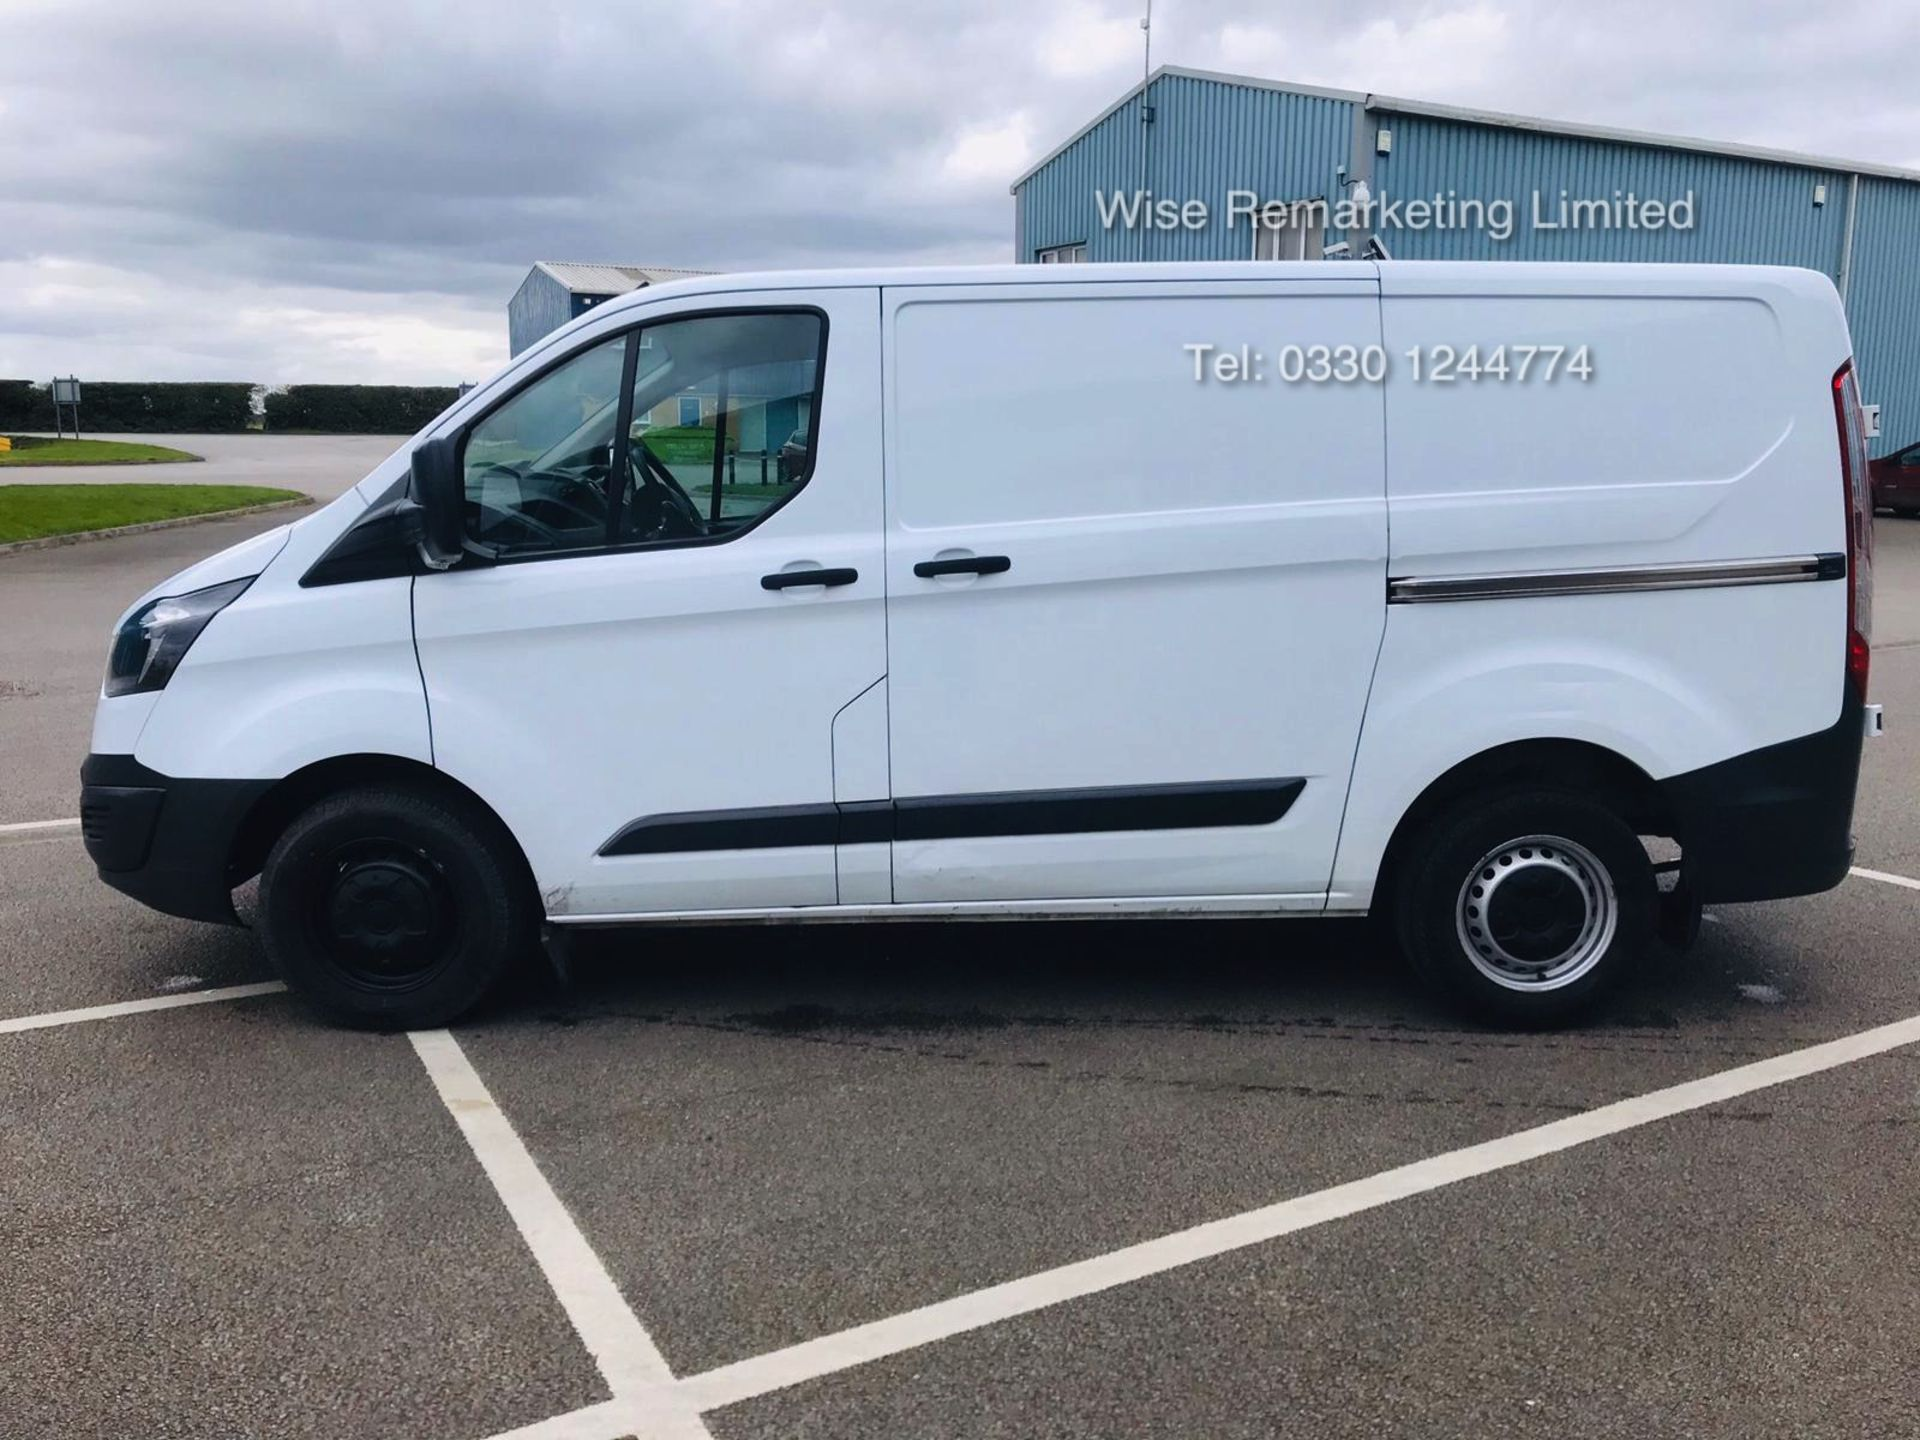 Lot 5 - Ford Transit Custom 270 2.2 TDCI Eco-Tech - 2016 Model - 1 Keeper From New